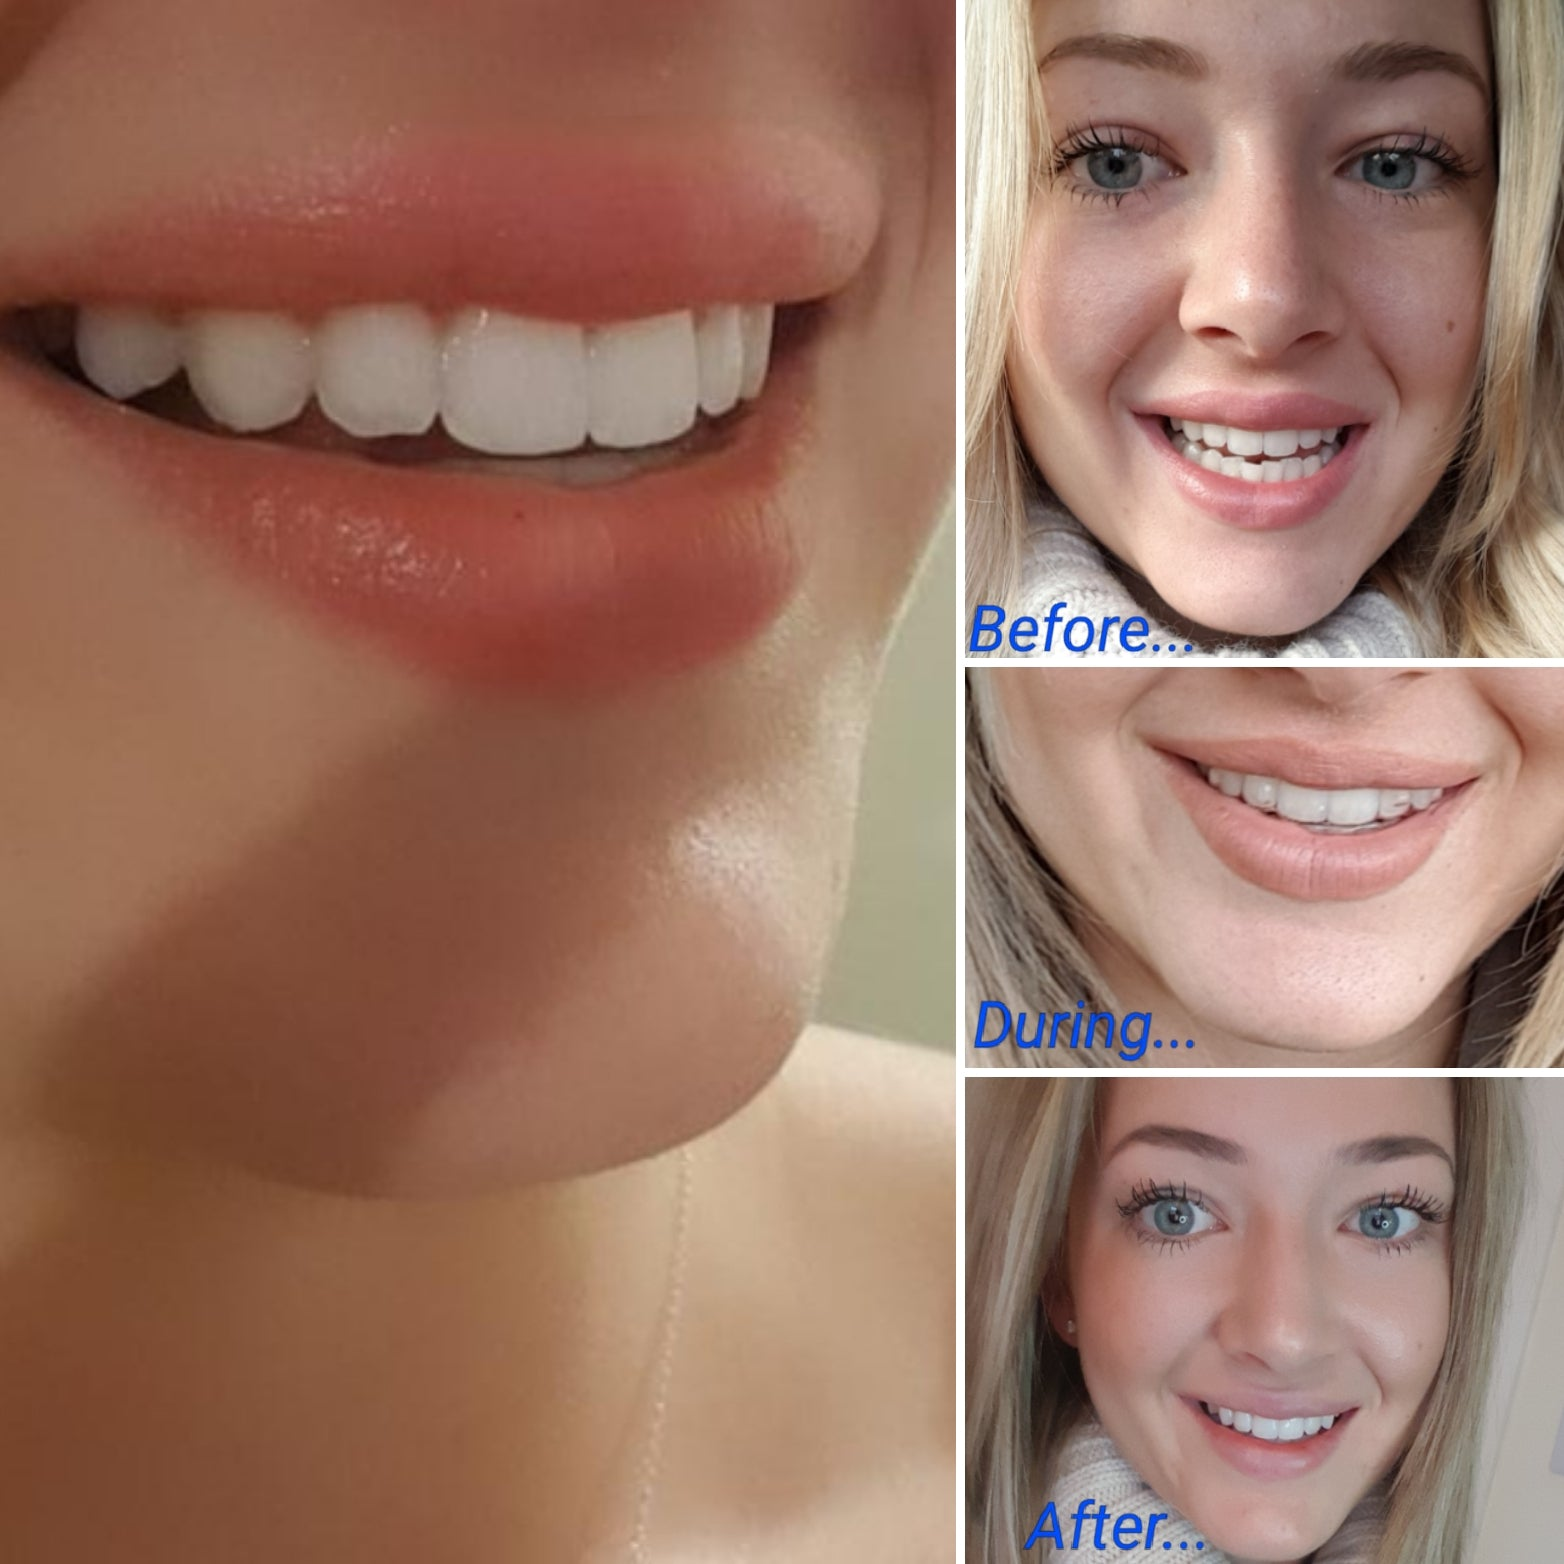 Ever wondered what Teeth Straightening with Invisalign involves?